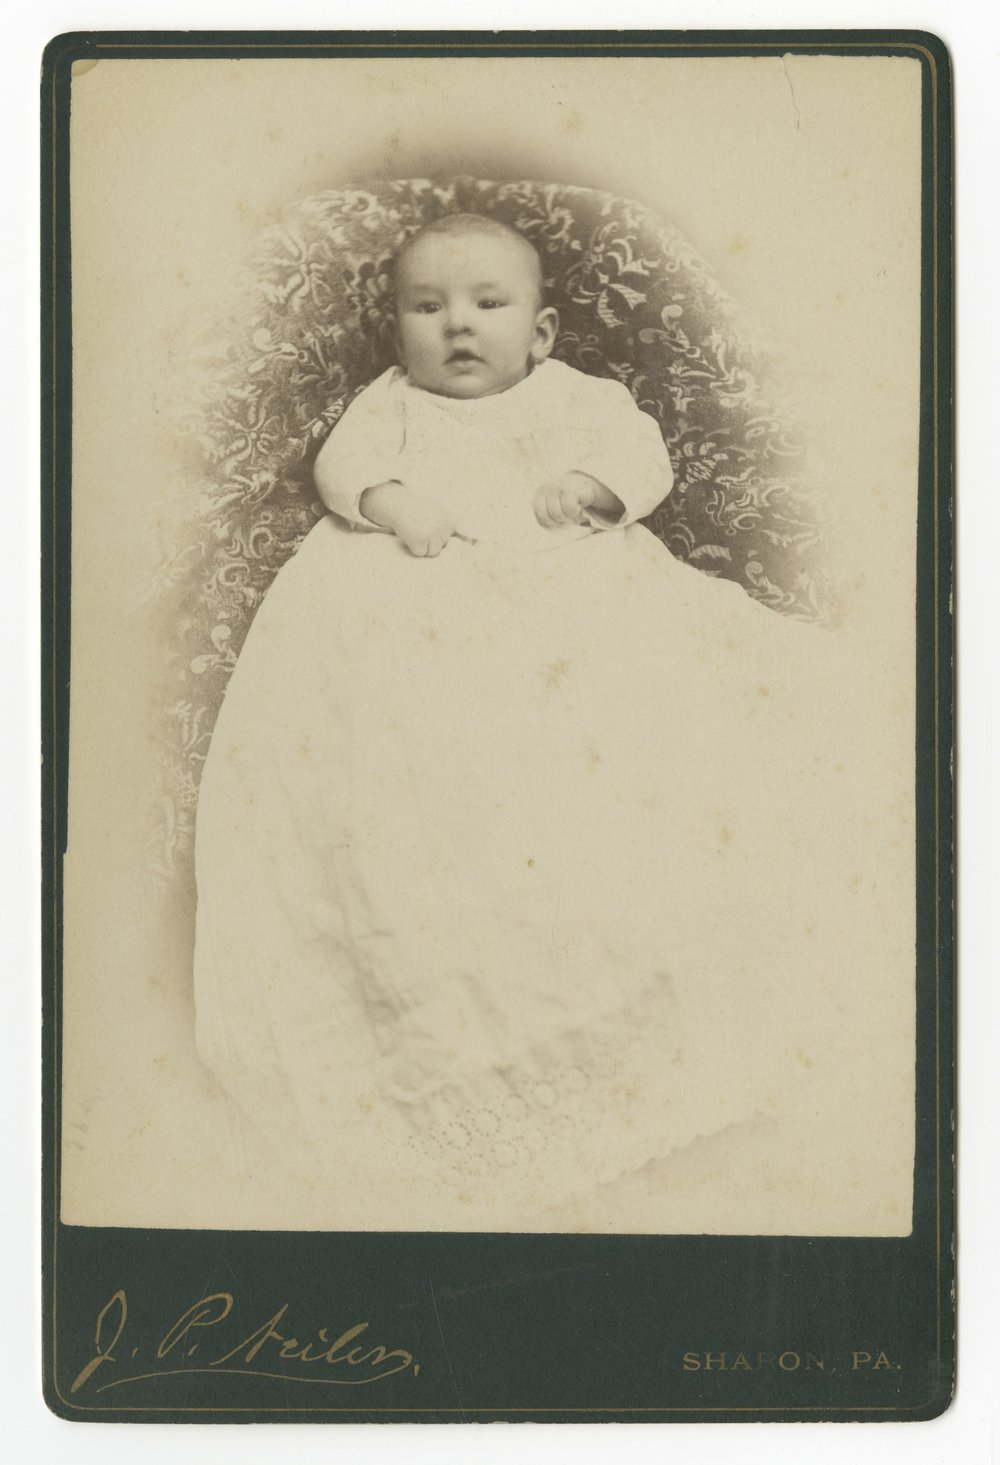 Alfred M. Landon as an infant